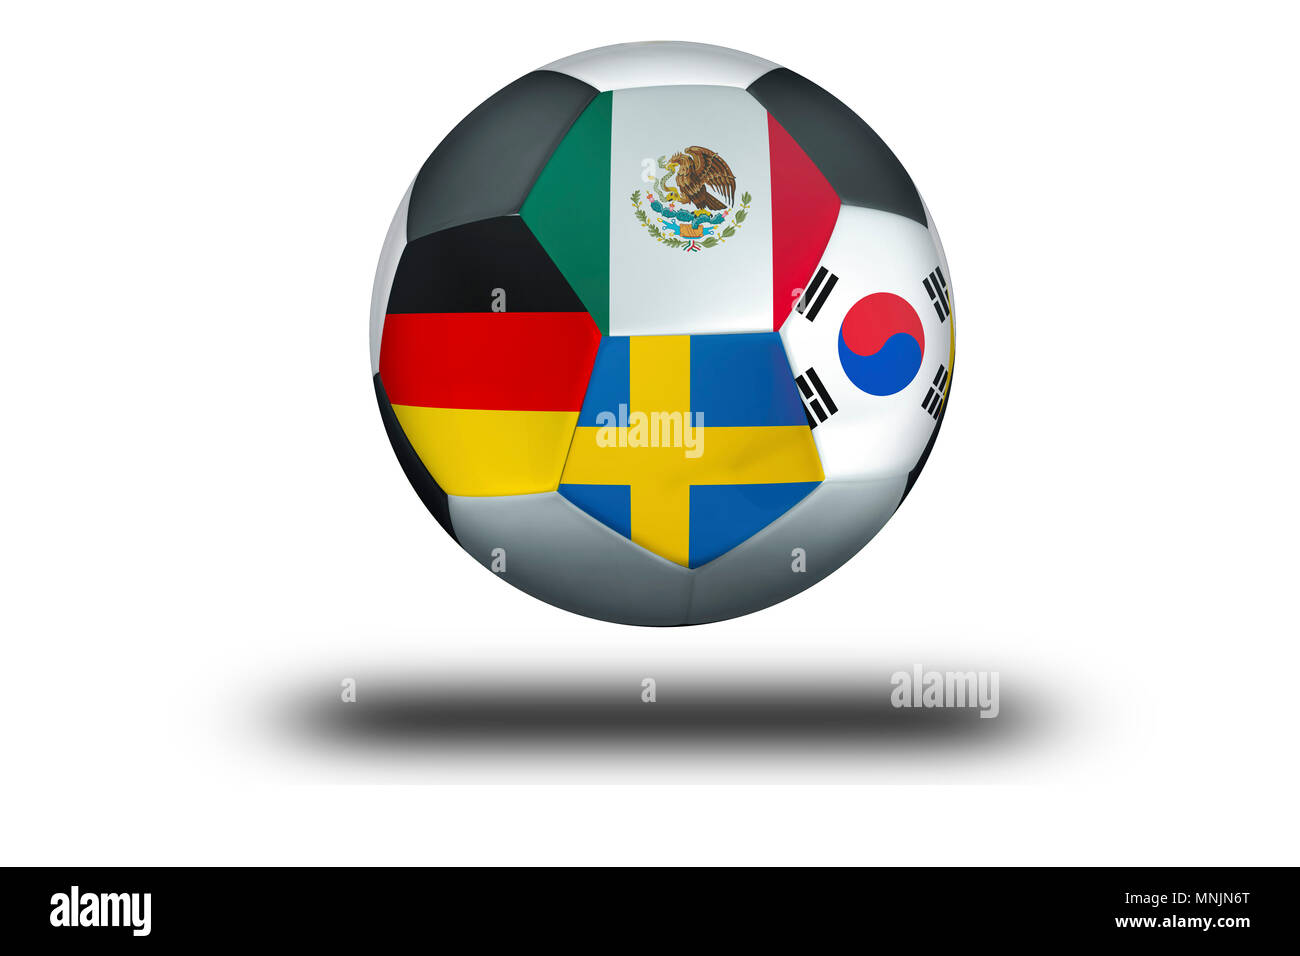 Football Group F Mexico, Germany, Sweden, South Korea - Stock Image